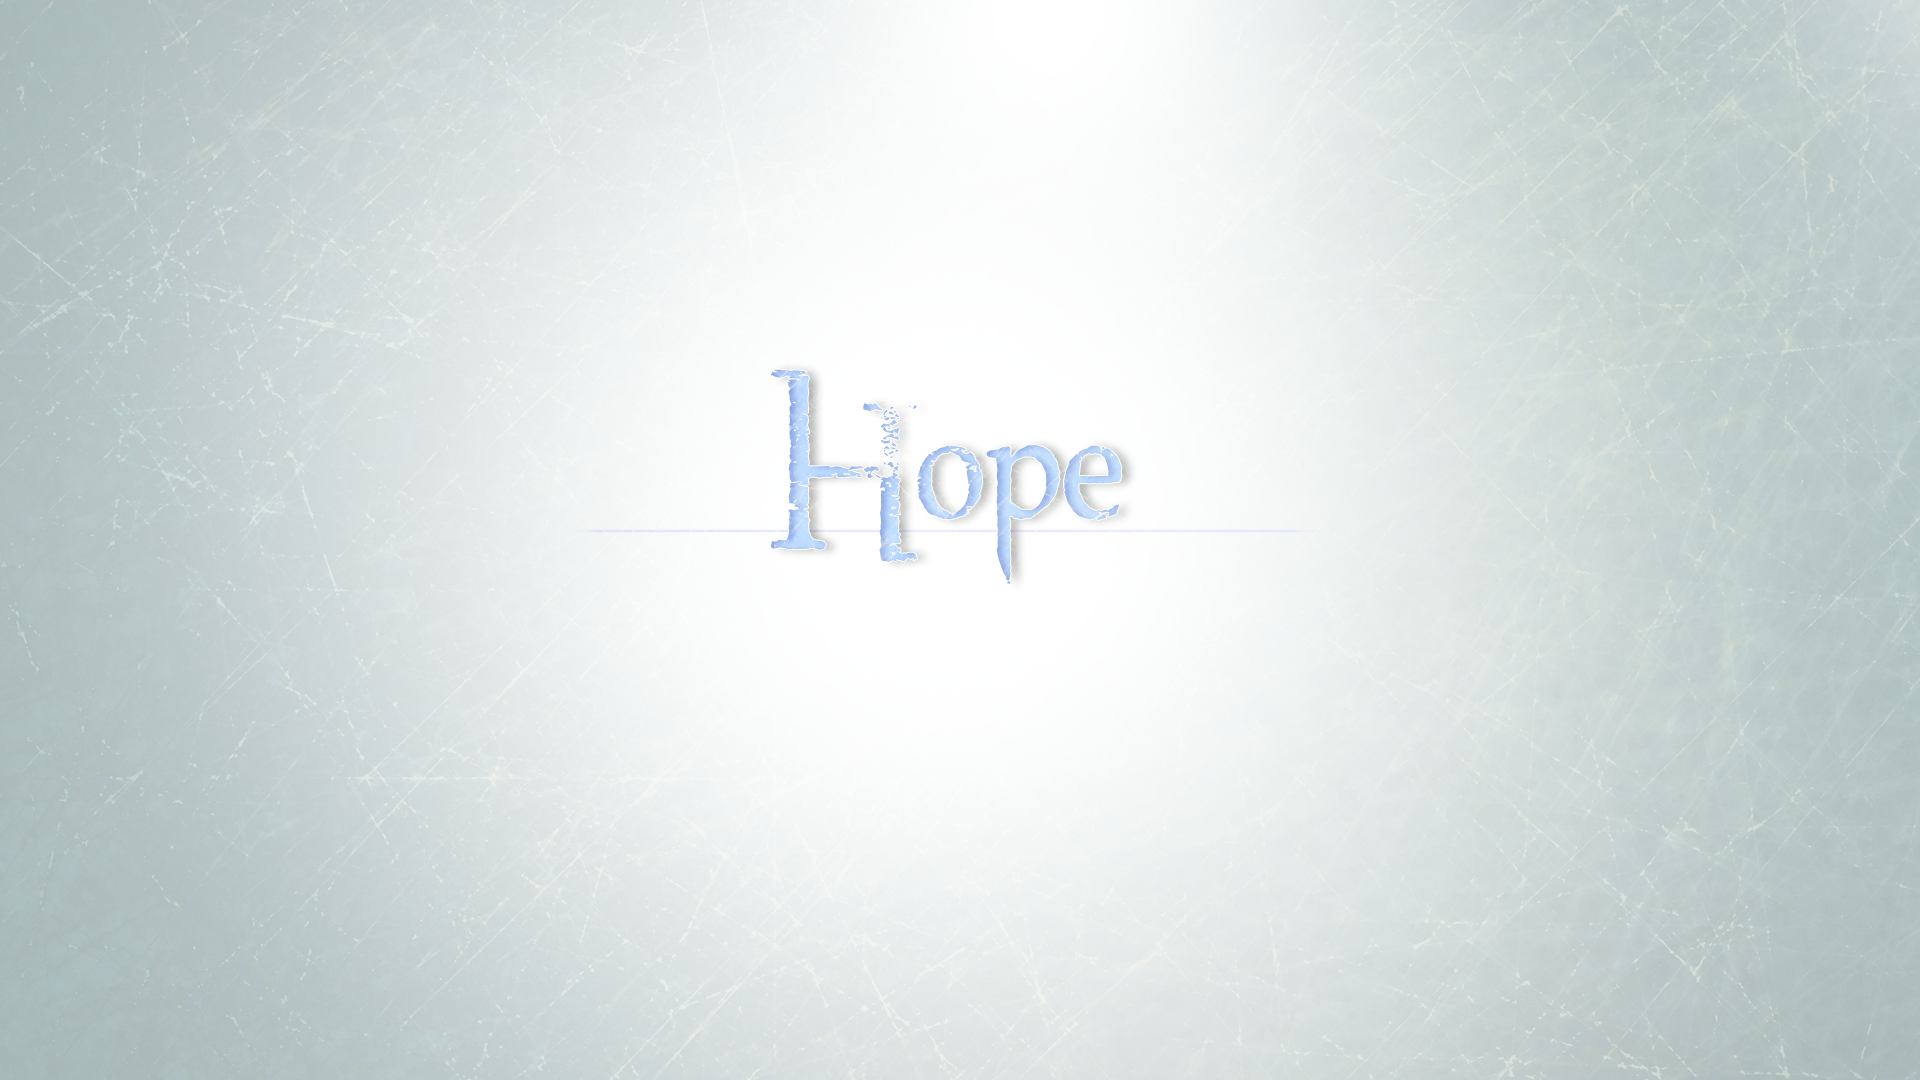 HQ RES Wallpapers of Hope